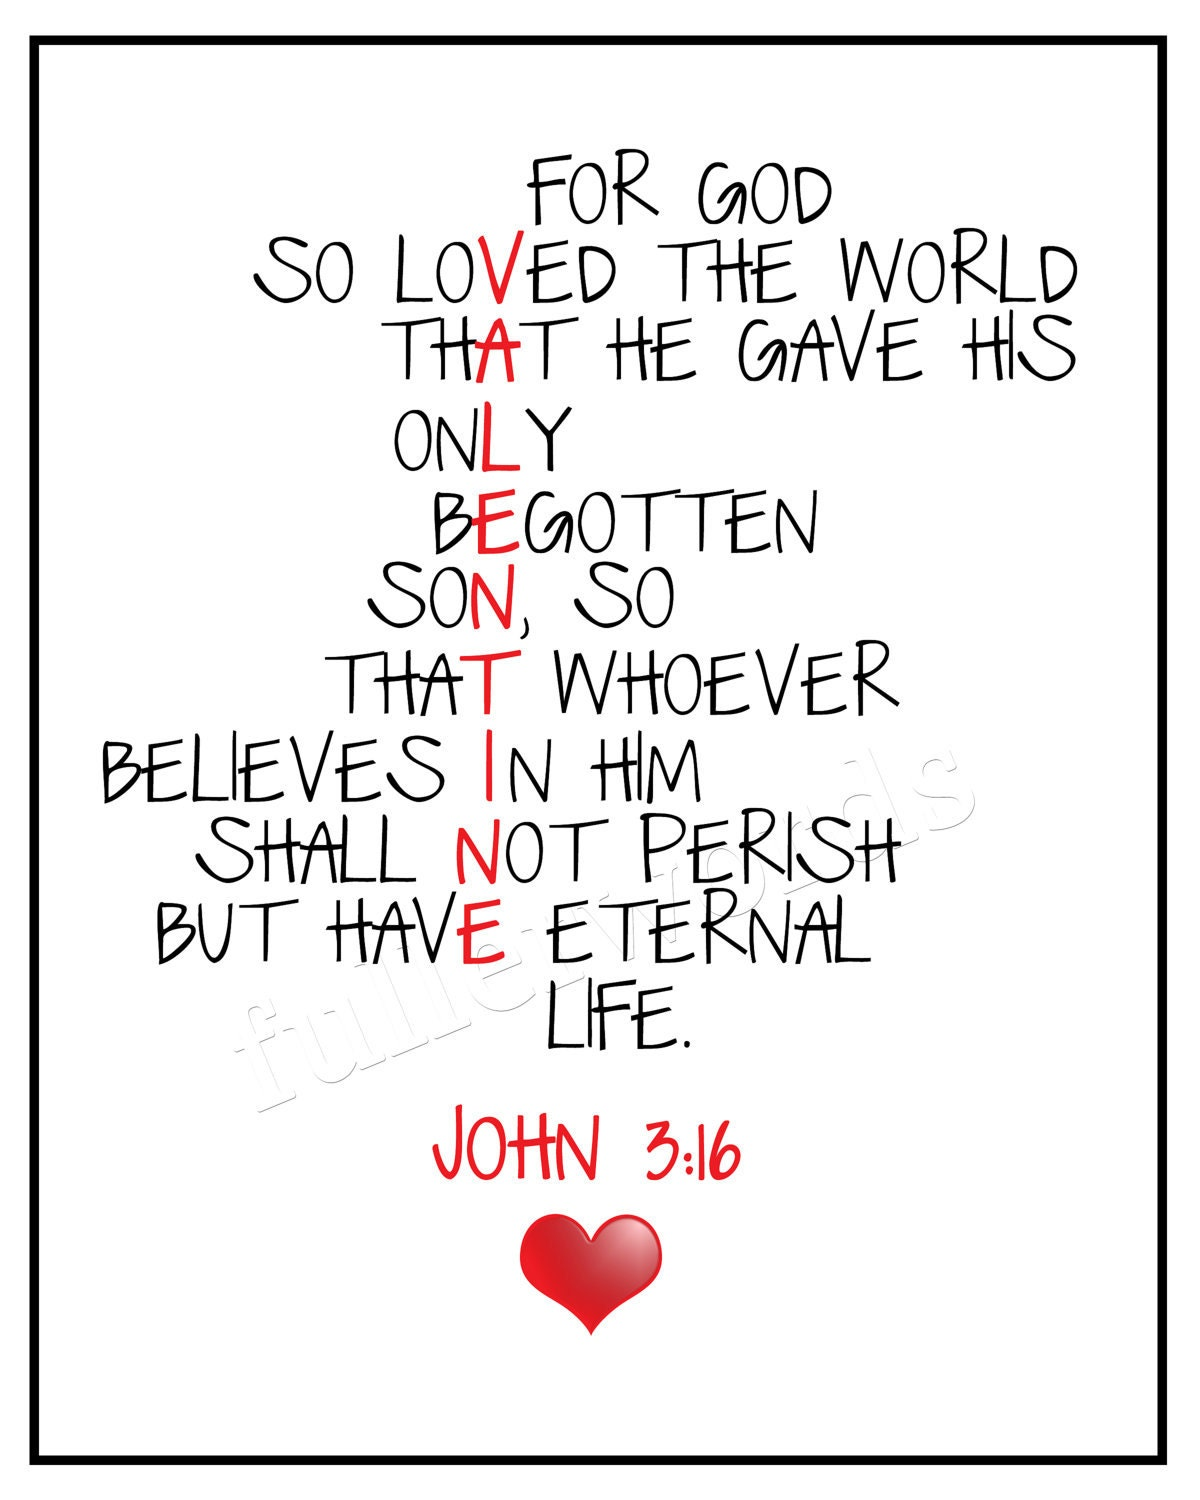 16 Valentine S Day Quotes To Share The Love: John 3:16 Bible Verse 8x10 Valentines Digital By Fullerwords